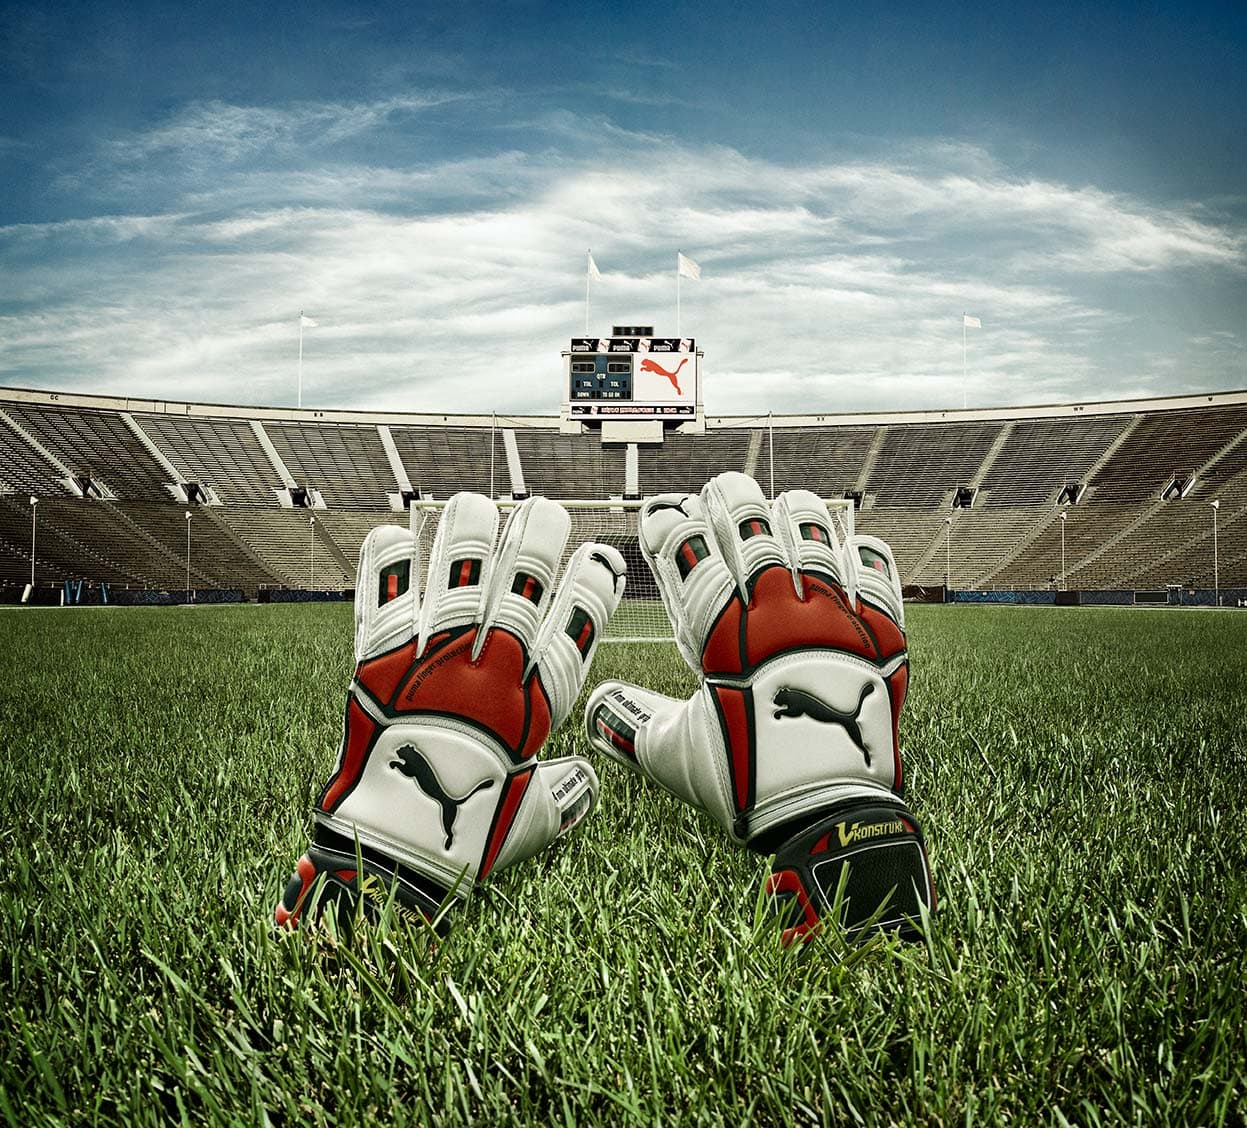 Puma Athletic White Red Black Sports Gloves Grass Facing Stadium Blue Skies